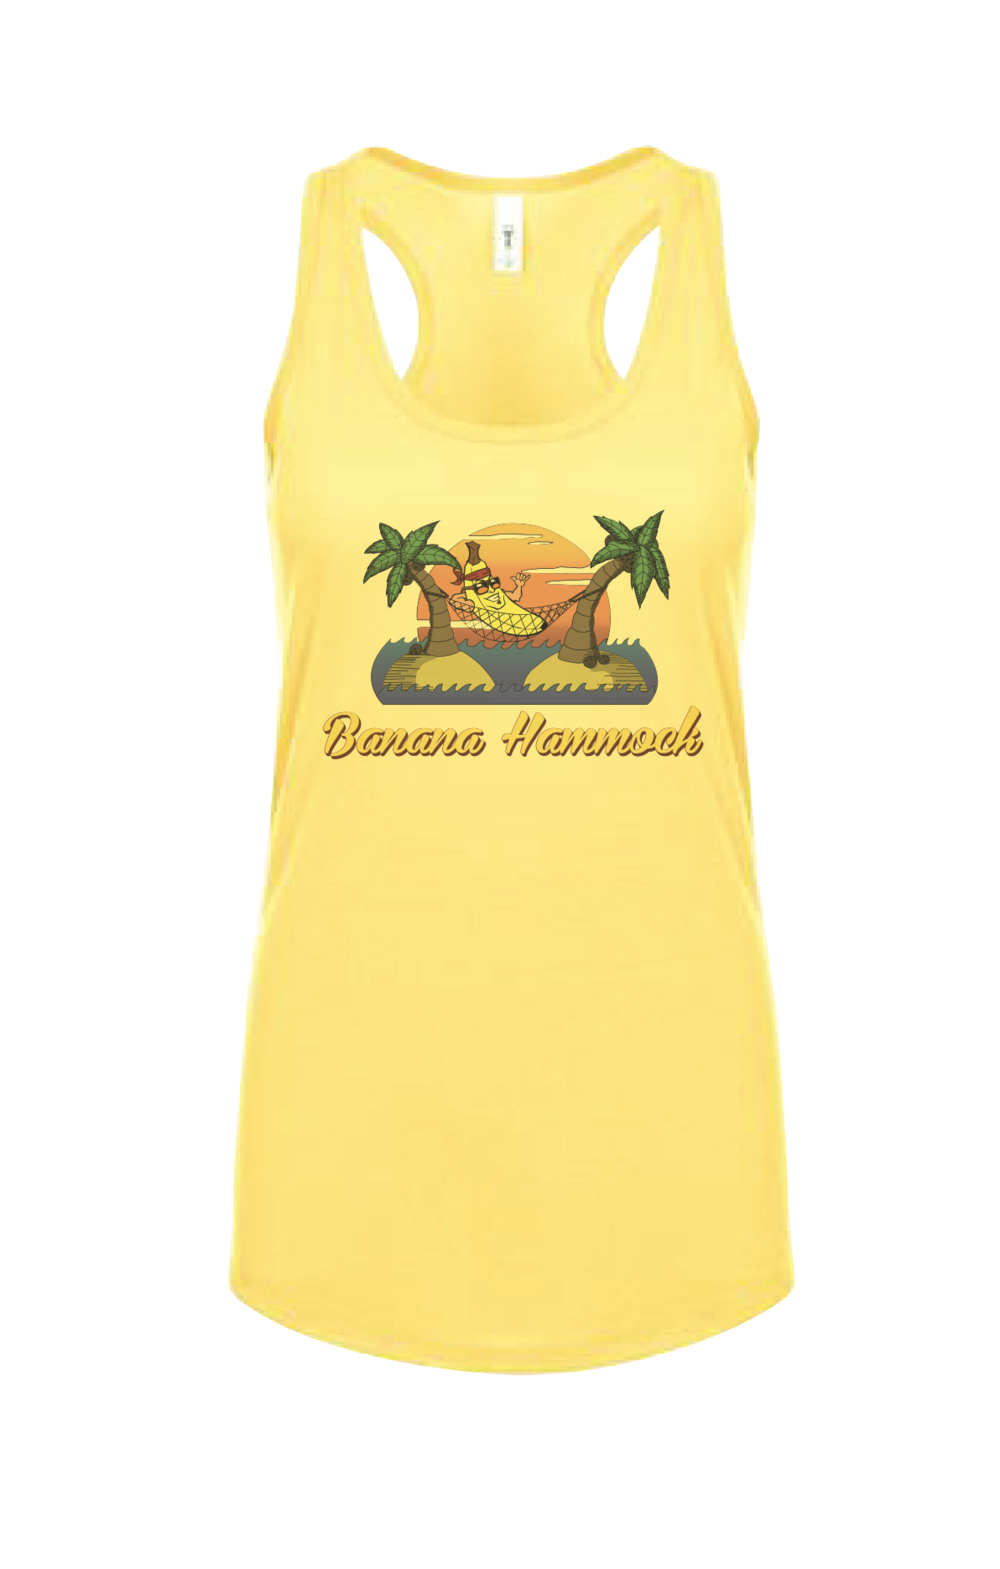 banana hammock tank   womens battle of the exes 2   realjohnnybananas  banana hammock tank      rh   realjohnnybananas